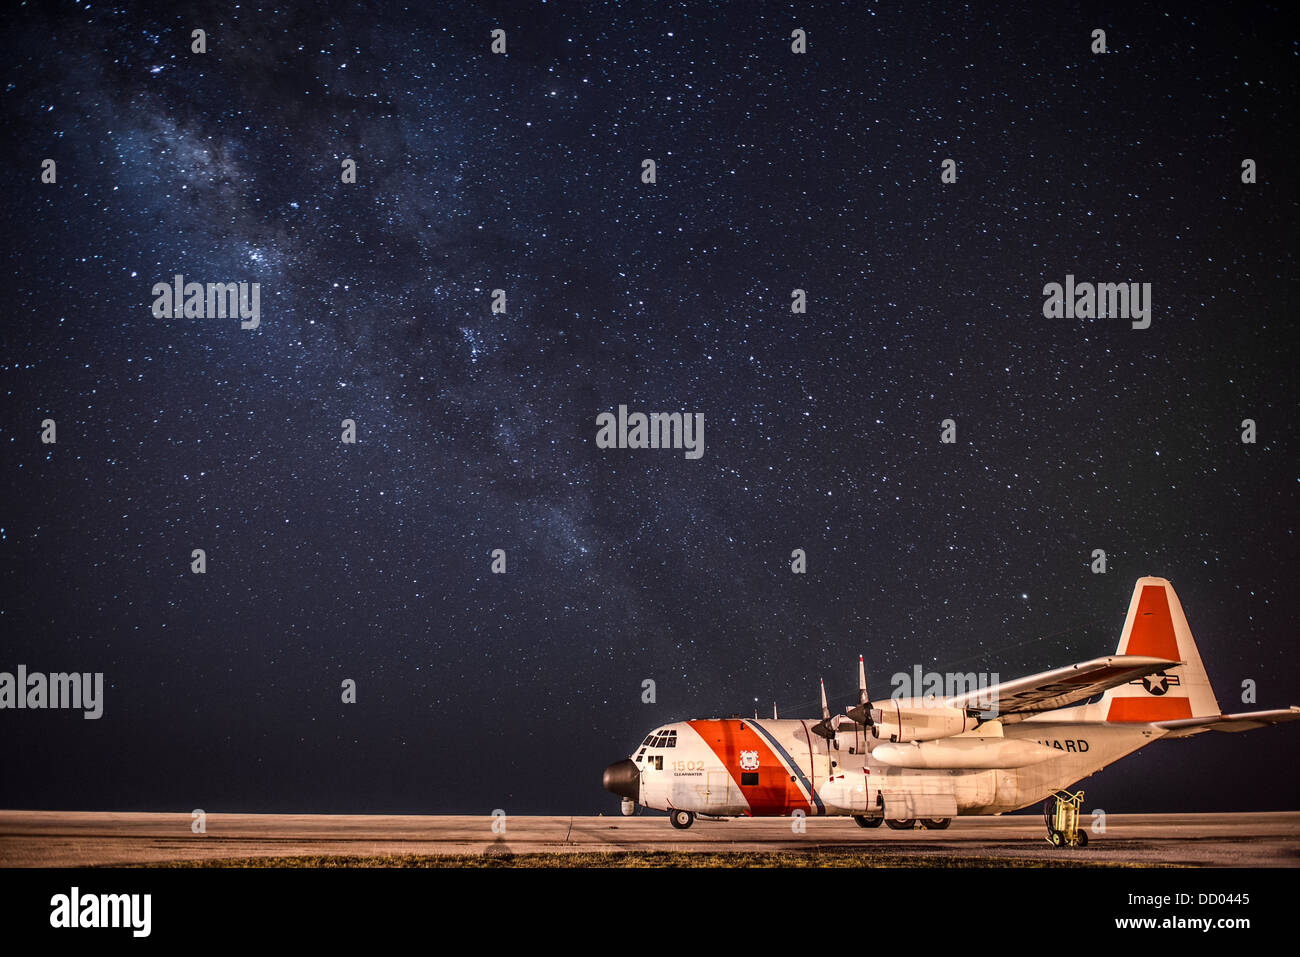 A US Coast Guard C-130 Hercules aircraft assigned to Coast Guard Air Station Clearwater sits parked on the tarmac - Stock Image